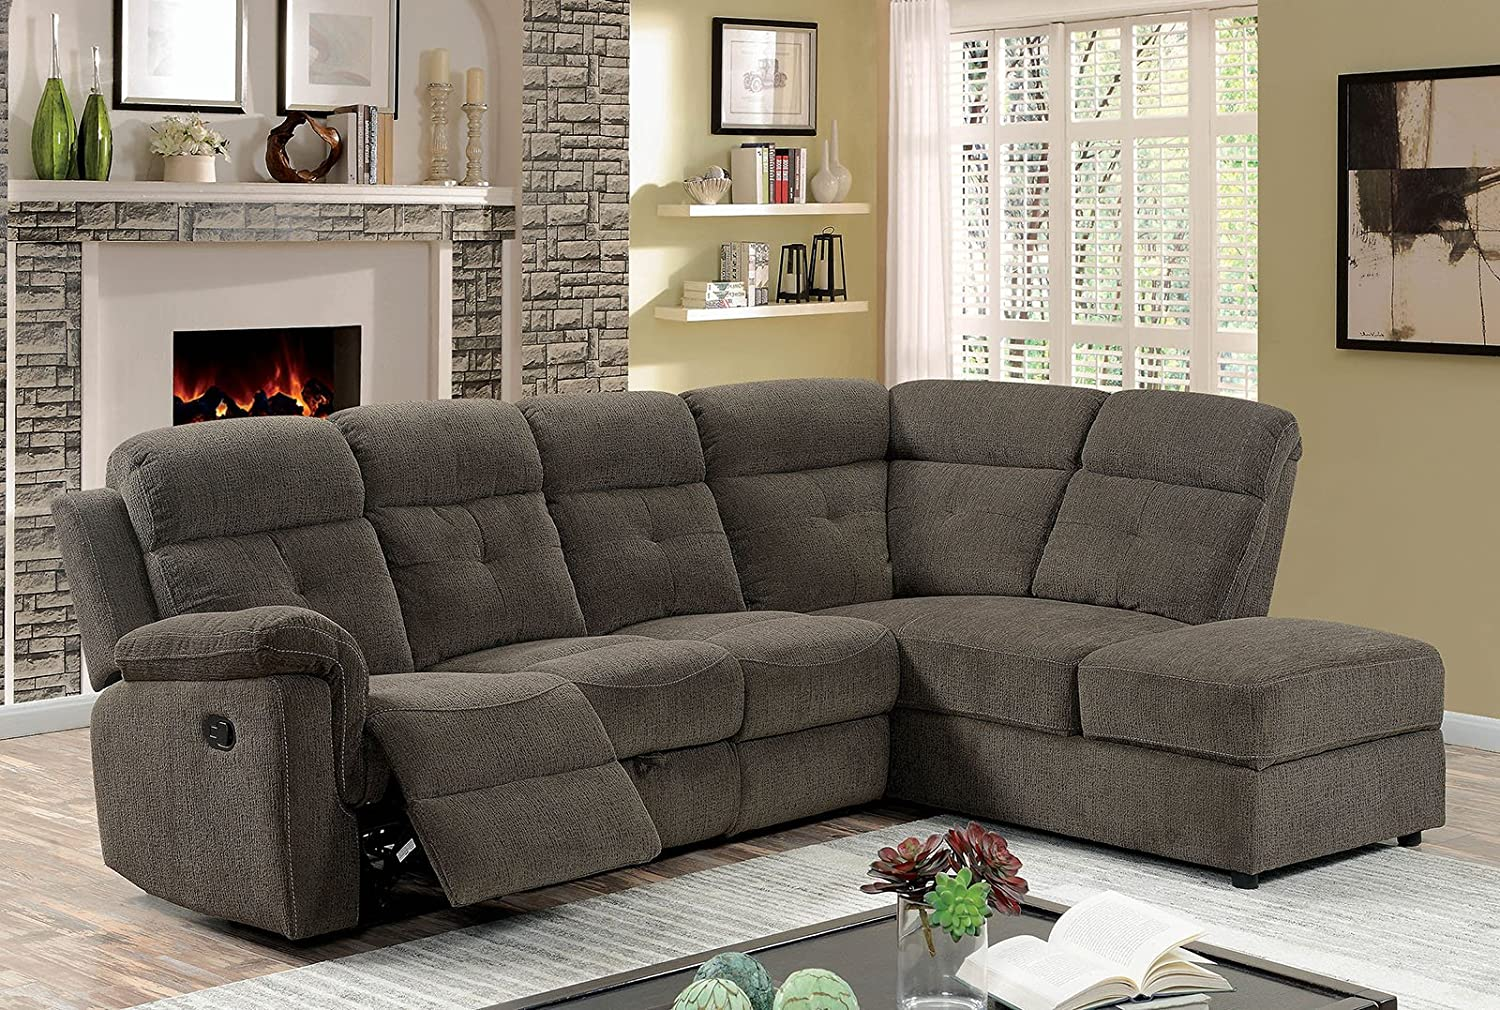 Incredible Amazon Com Avia Sectional Reclining Sofa W Drop Down Ocoug Best Dining Table And Chair Ideas Images Ocougorg